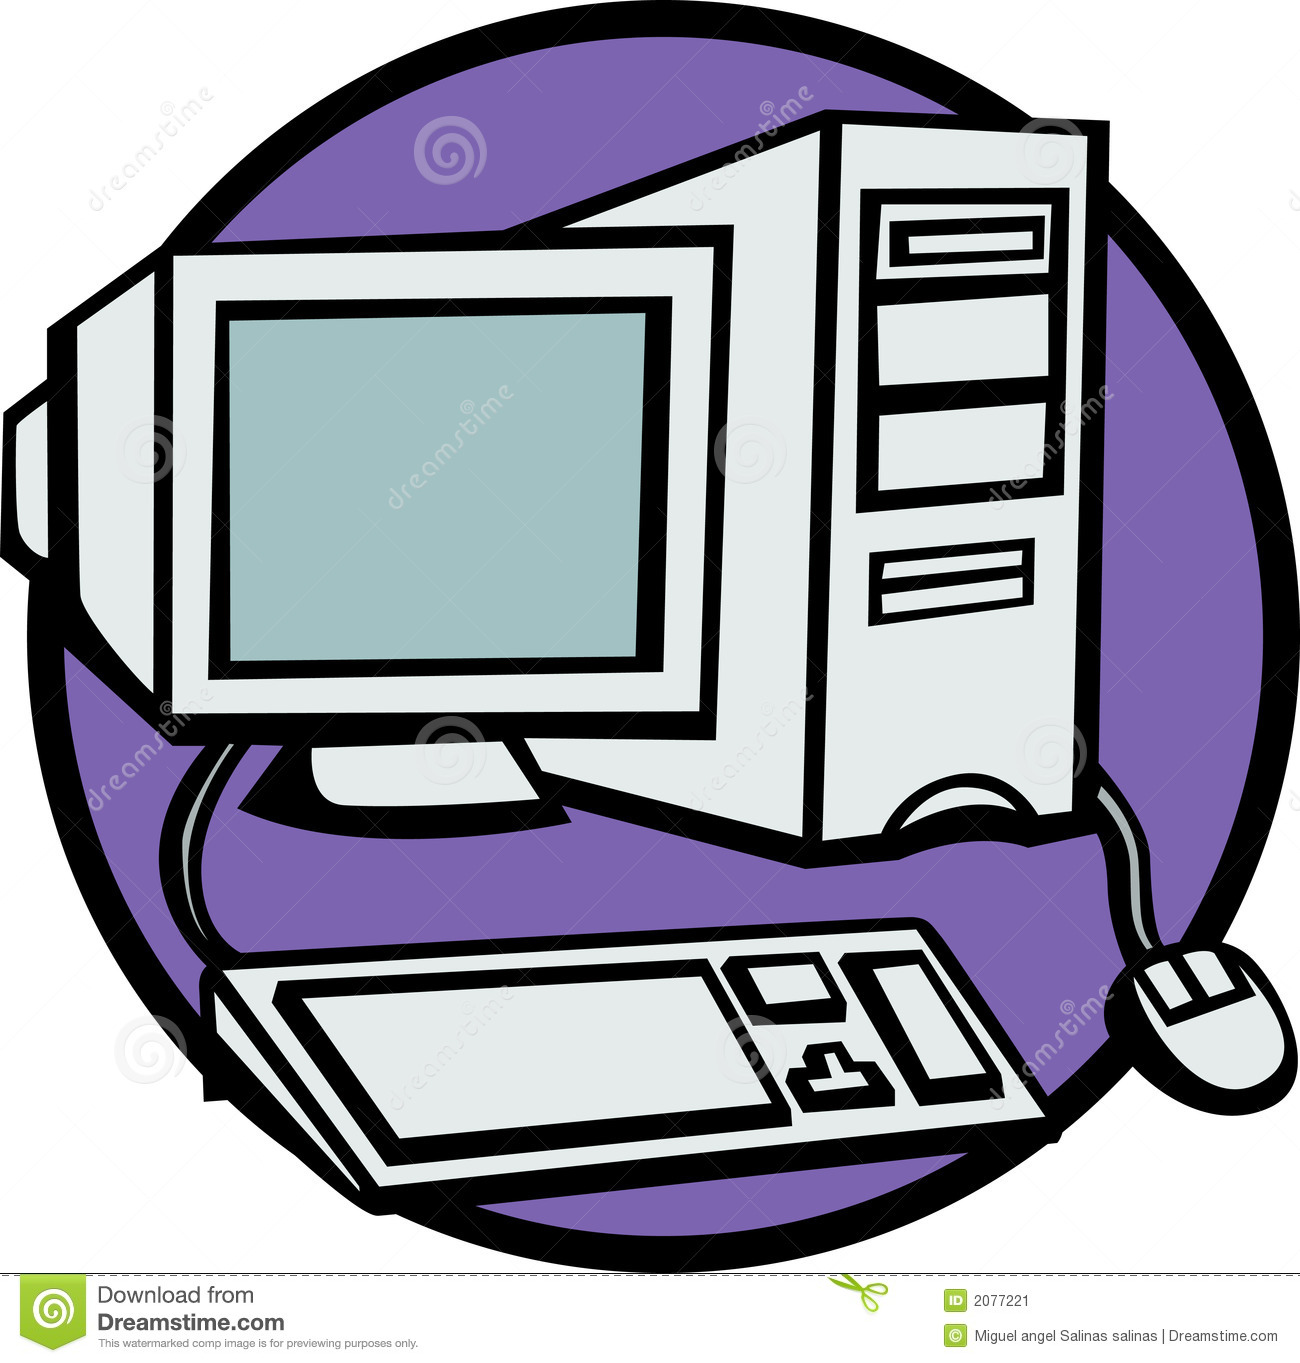 Desktop computer image desktop computer vector illustration 2077221